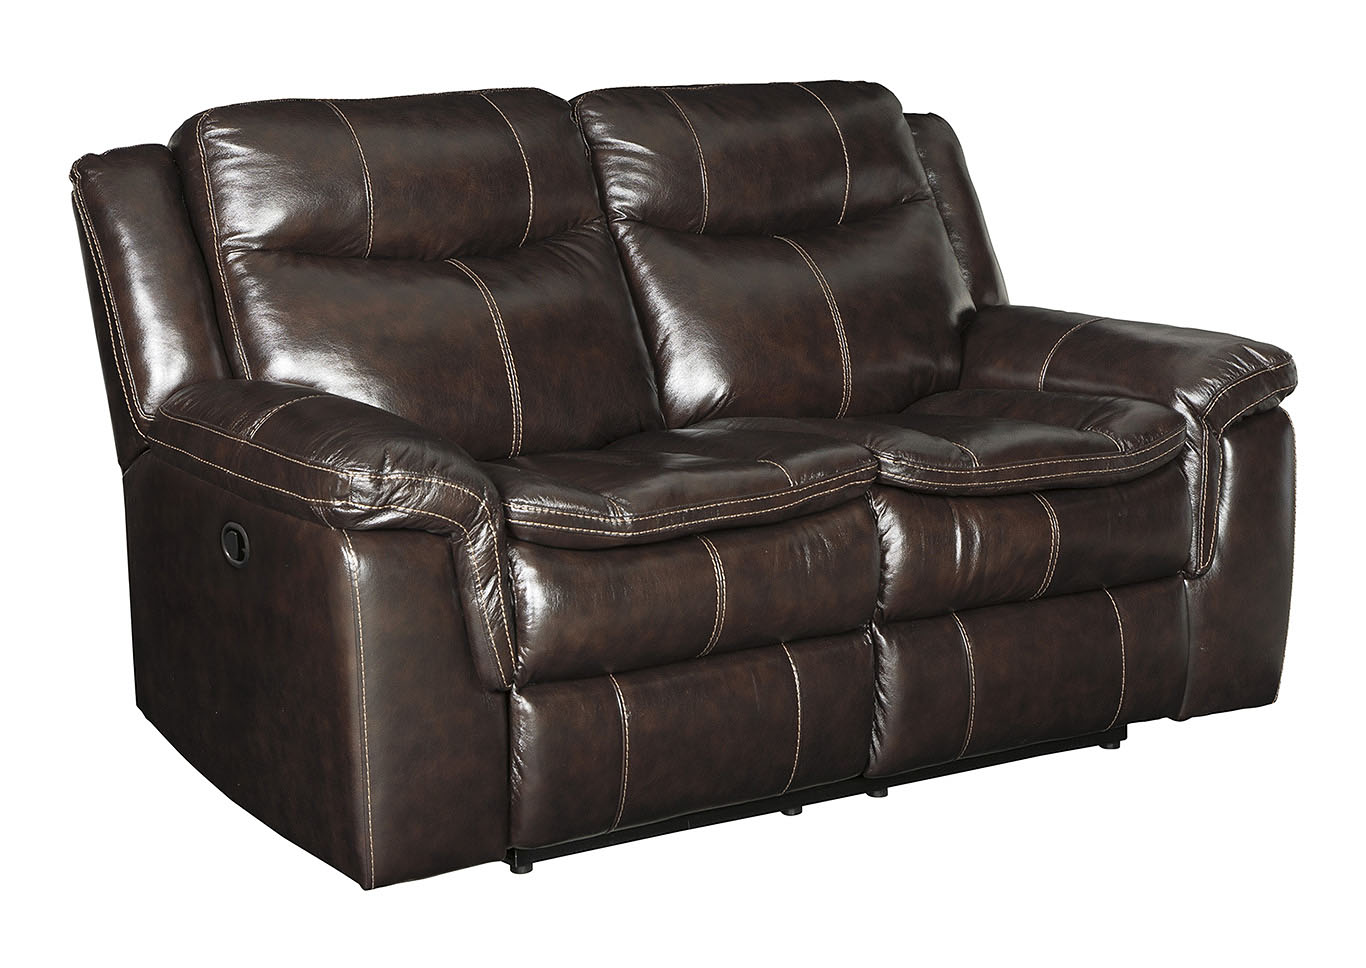 Lockesburg Canyon Reclining Loveseat,Signature Design By Ashley